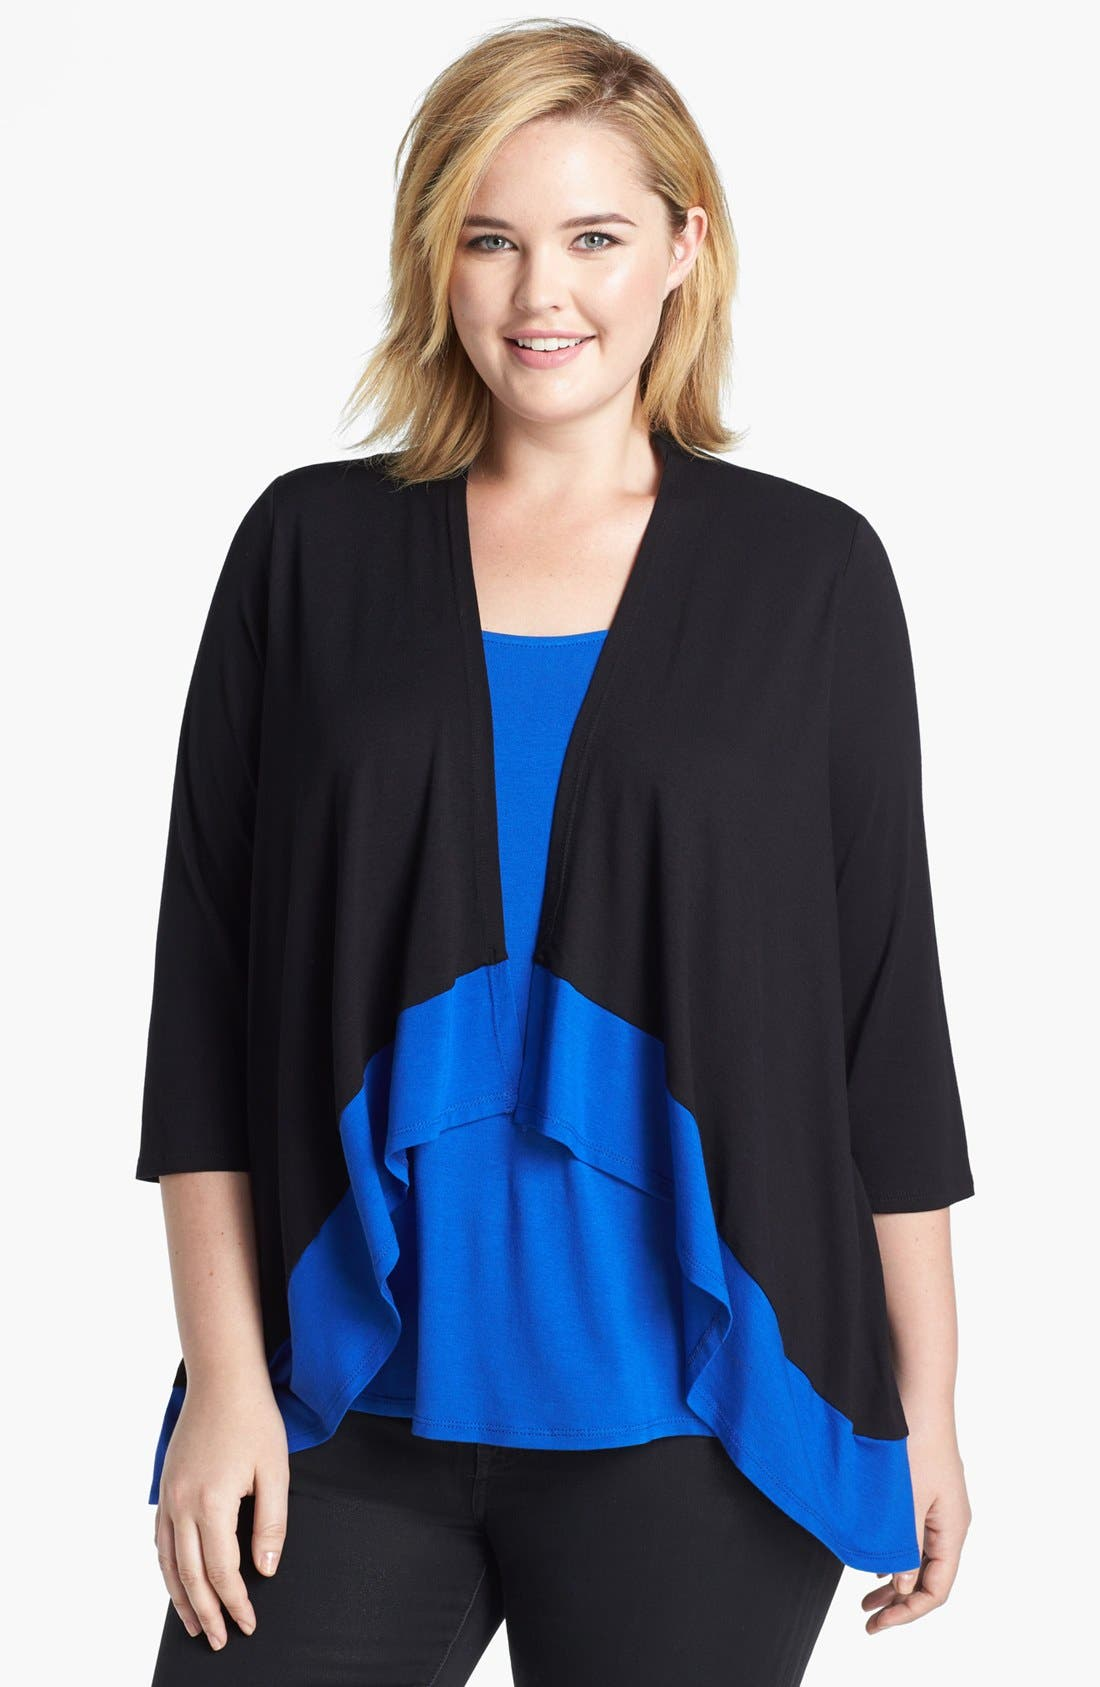 Alternate Image 1 Selected - Evans Colorblock Cardigan with Faux Camisole Insert (Plus Size)